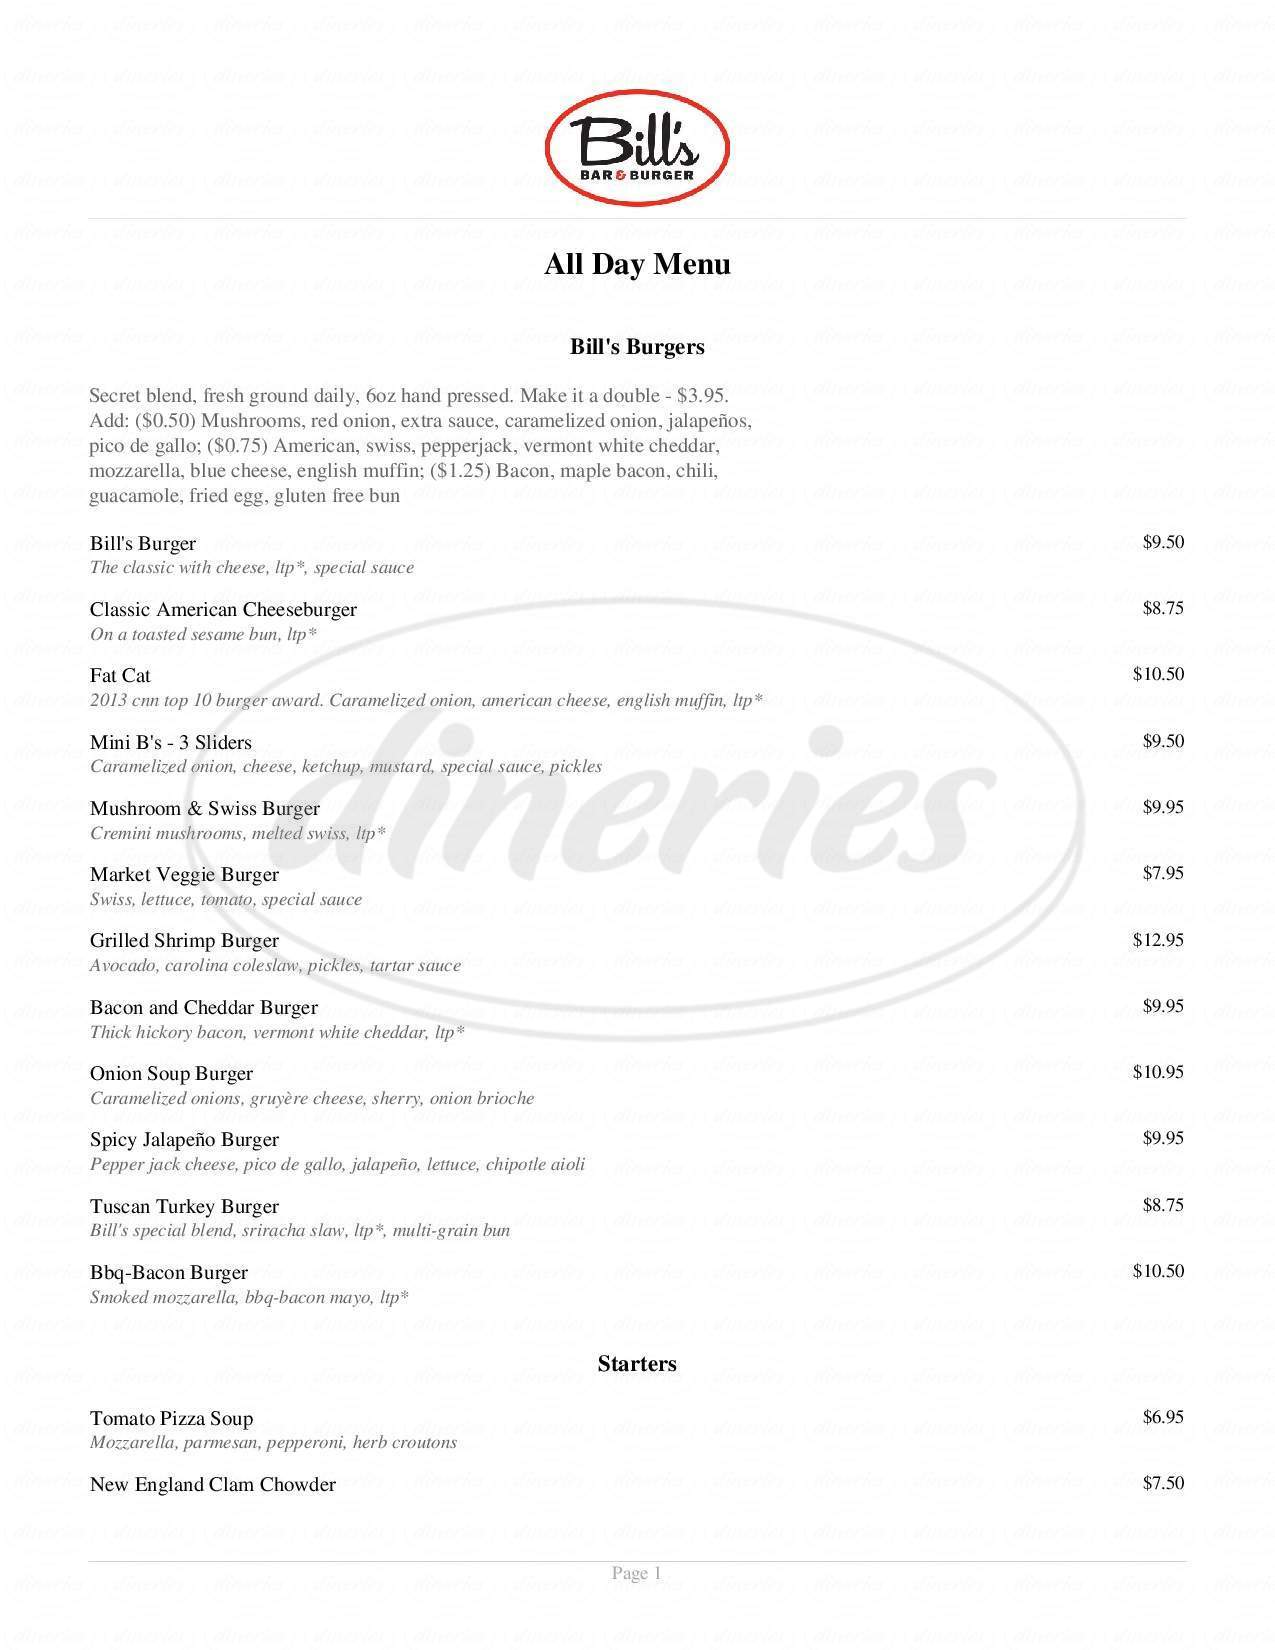 menu for Bill's Bar & Burger